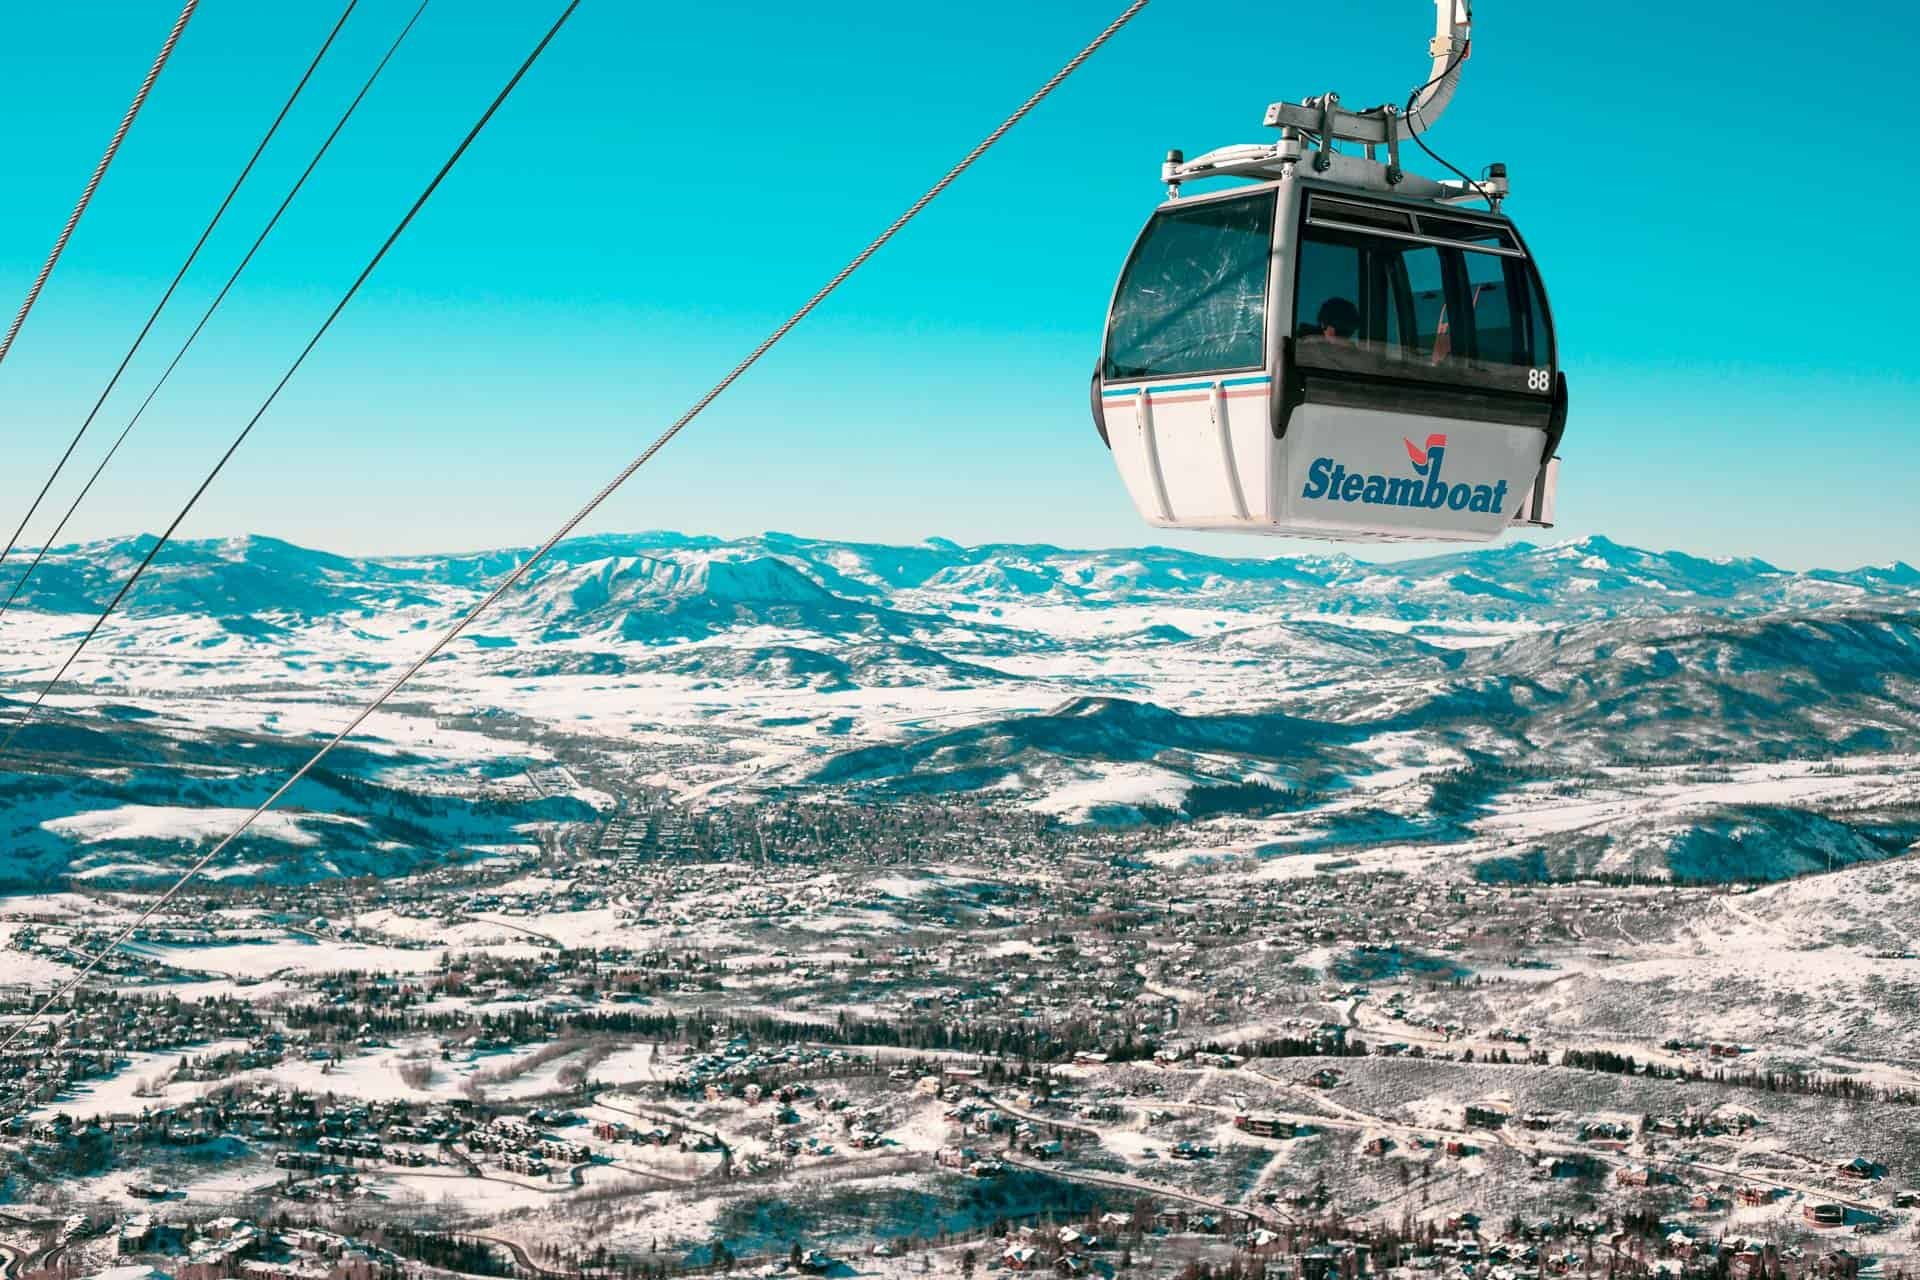 36 Things to do in Steamboat Springs in Winter